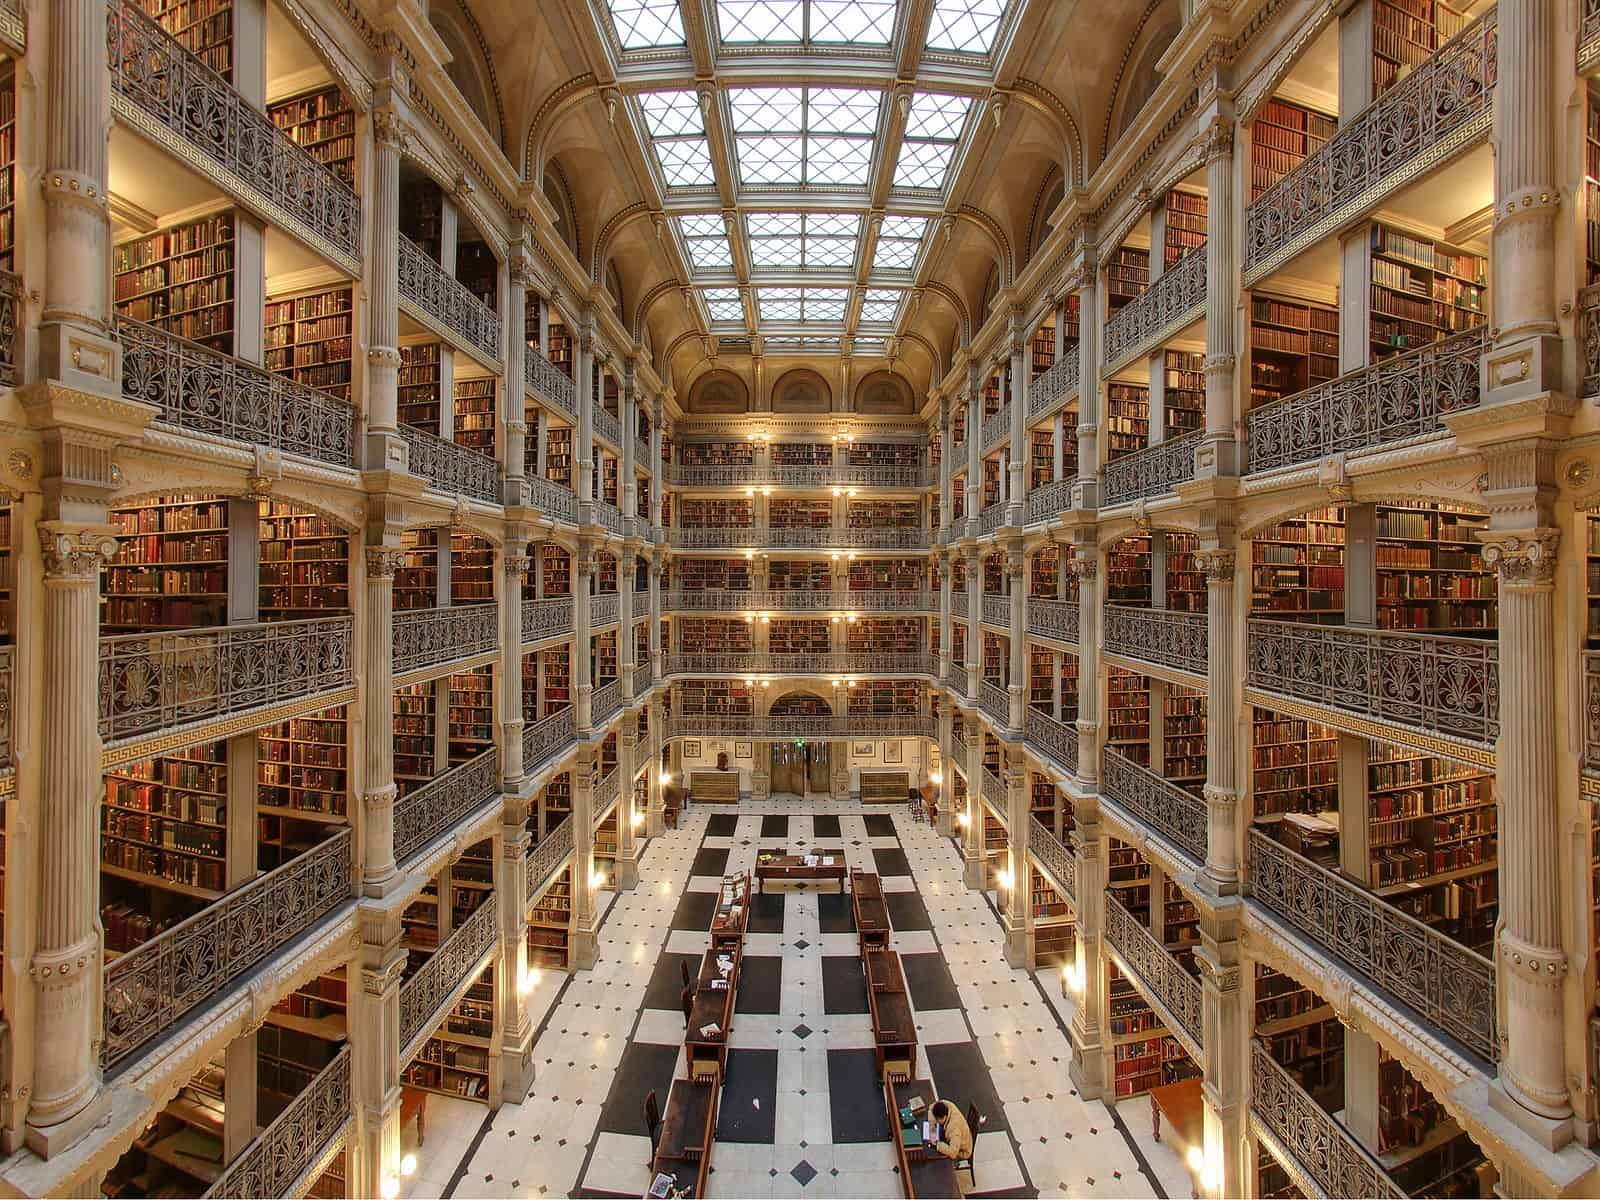 Photo from the second floor of George Peabody Library. Reading desks can be seen on the ground floor and a skylight lights the railings of the floors above.